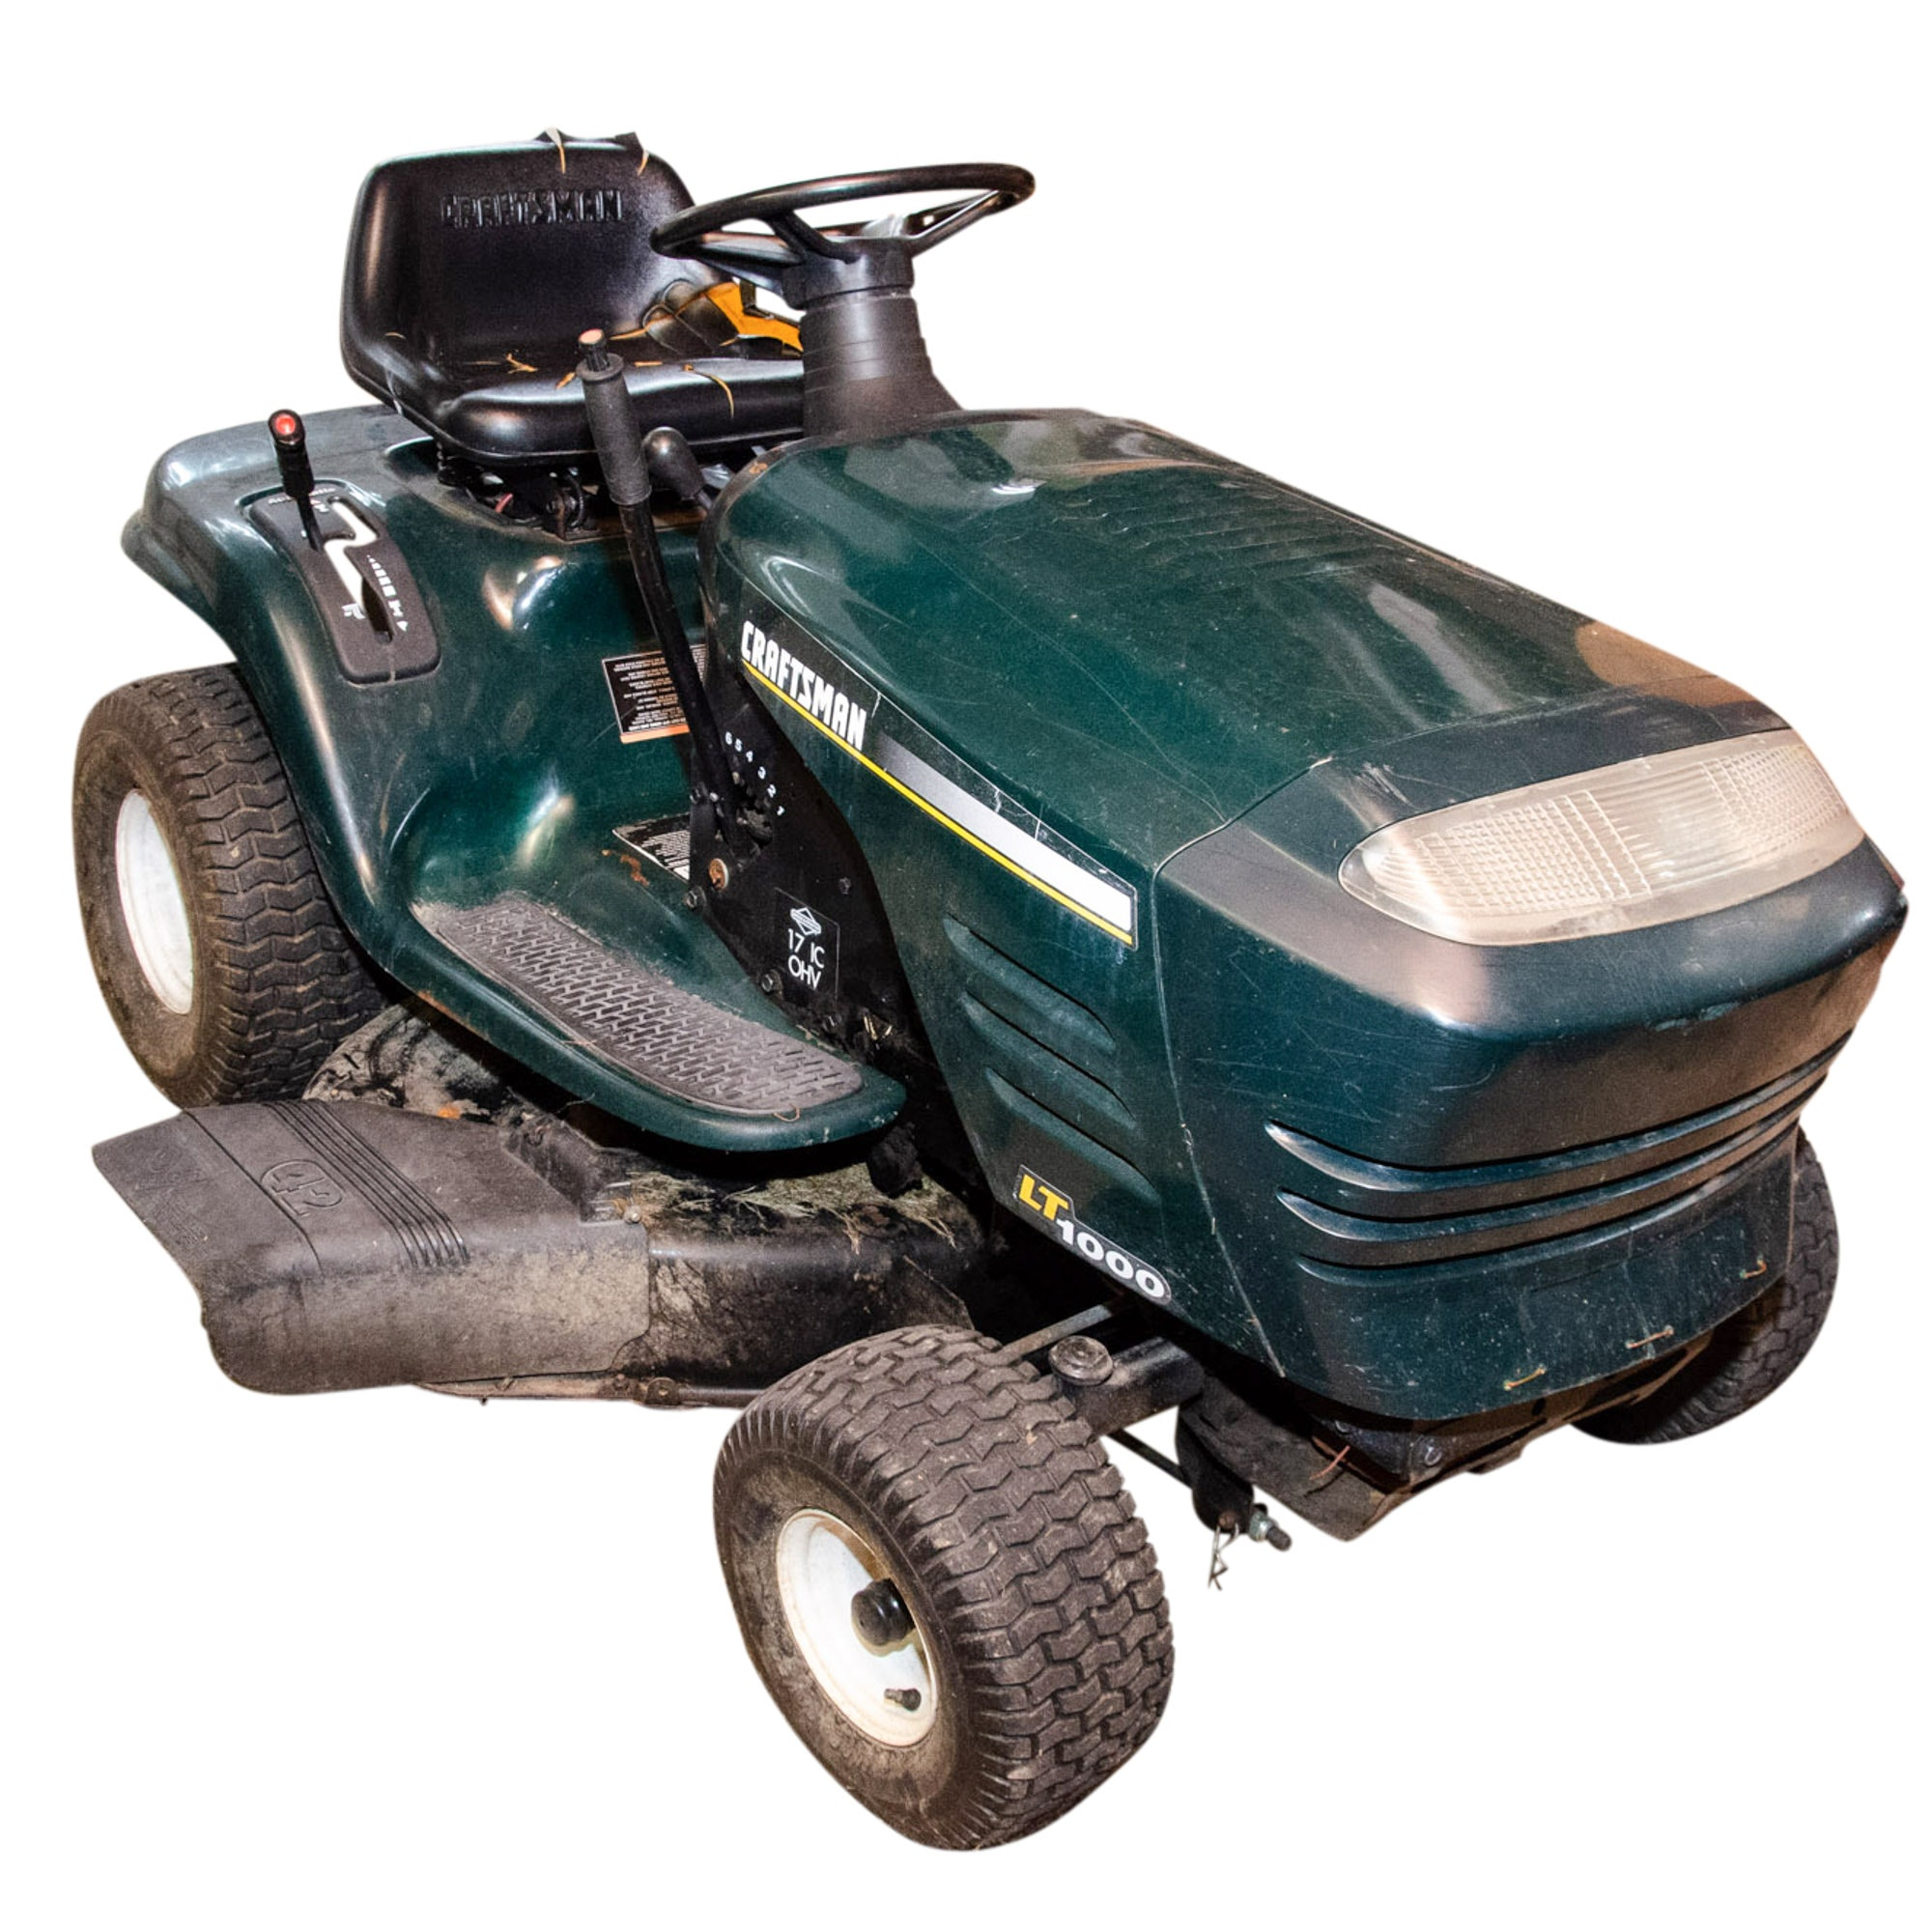 Craftsman LT1000 Riding Lawnmower with 17HP OHV Briggs & Stratton Engine